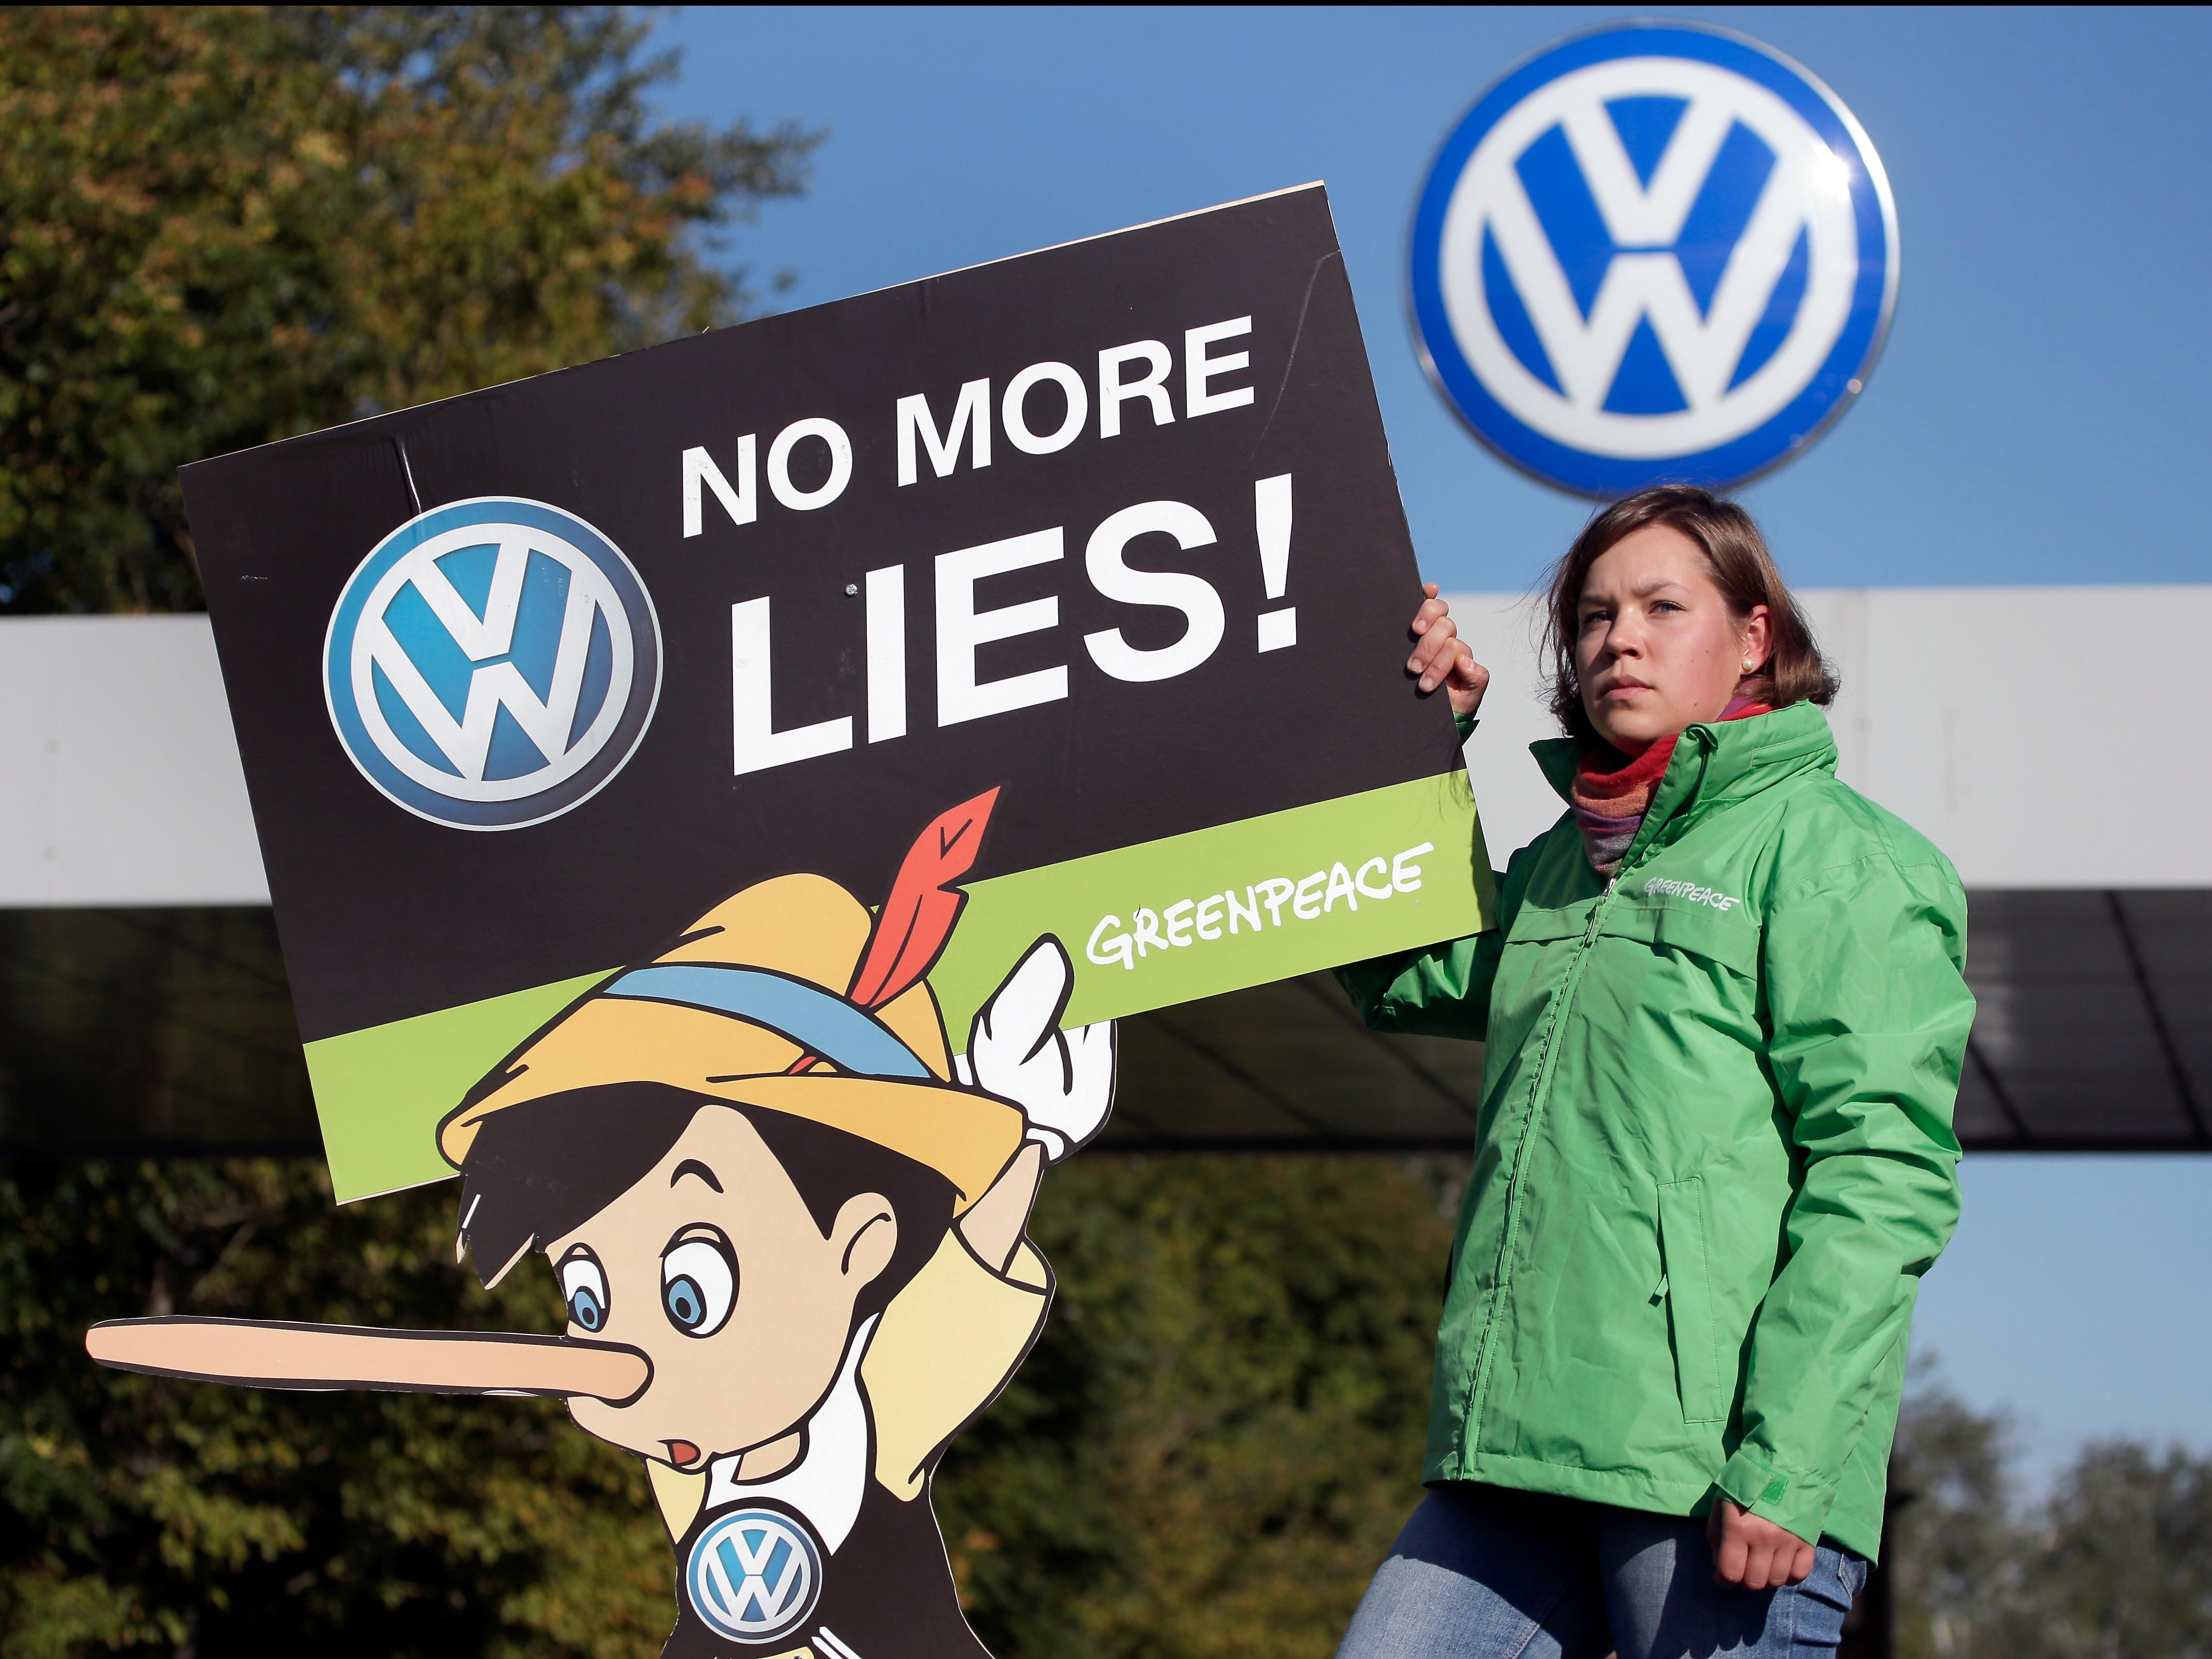 This is the real cause of the Volkswagen cheating scandal